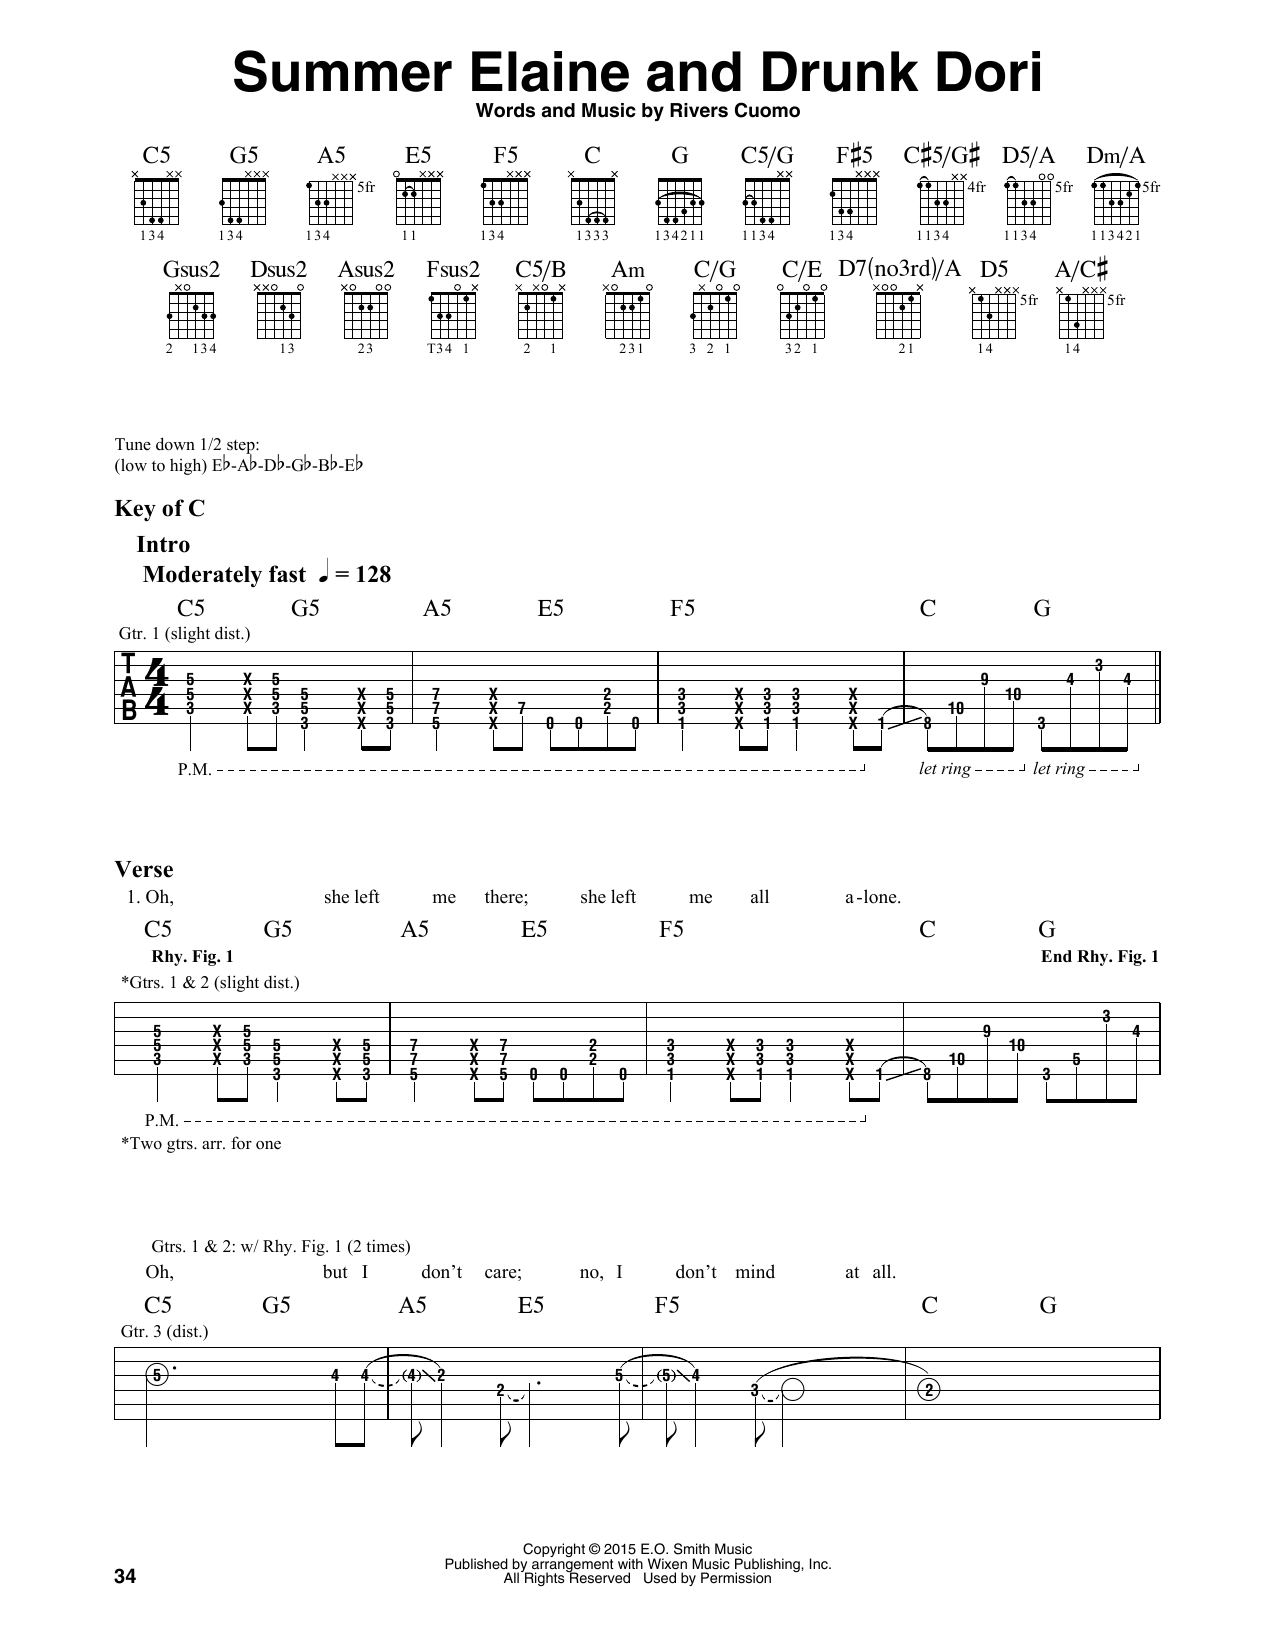 Weezer Summer Elaine And Drunk Dori sheet music notes and chords. Download Printable PDF.